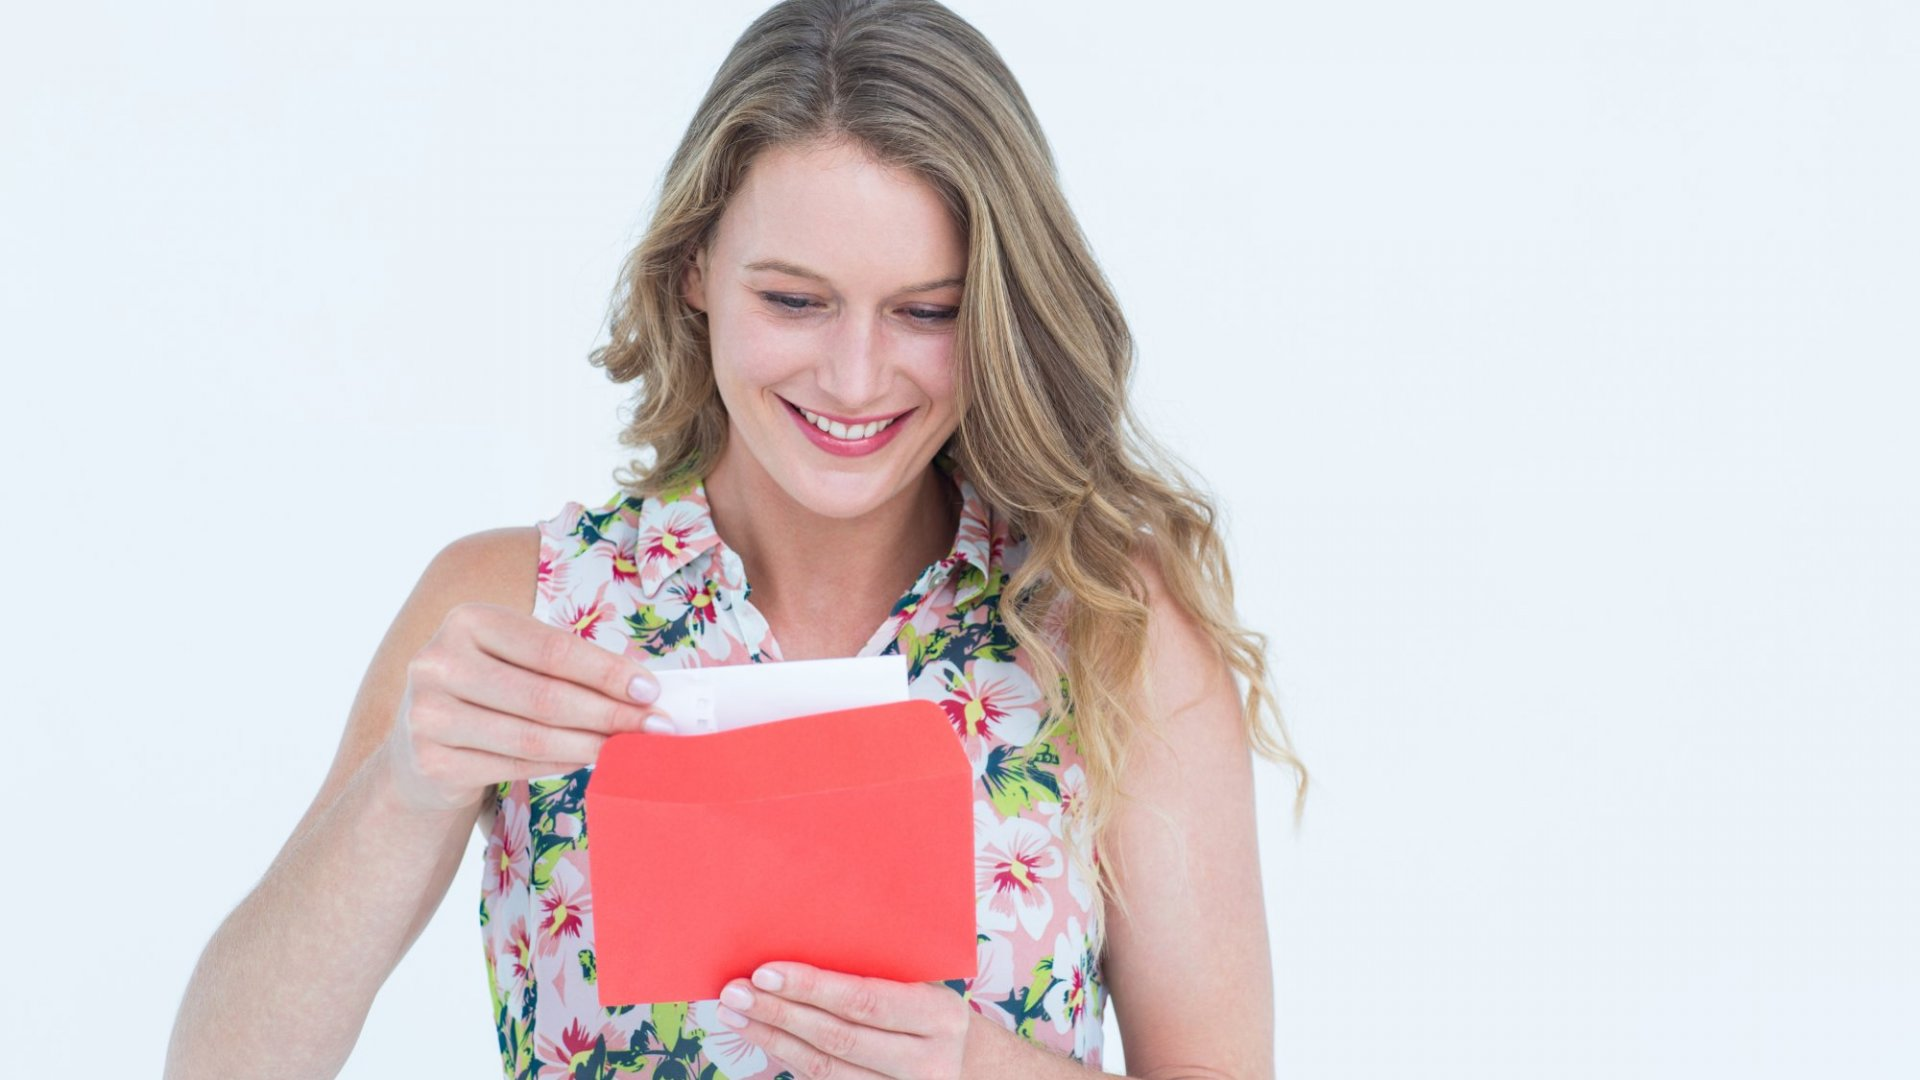 Send Handwritten Notes Like A Pro With These Simple Tips